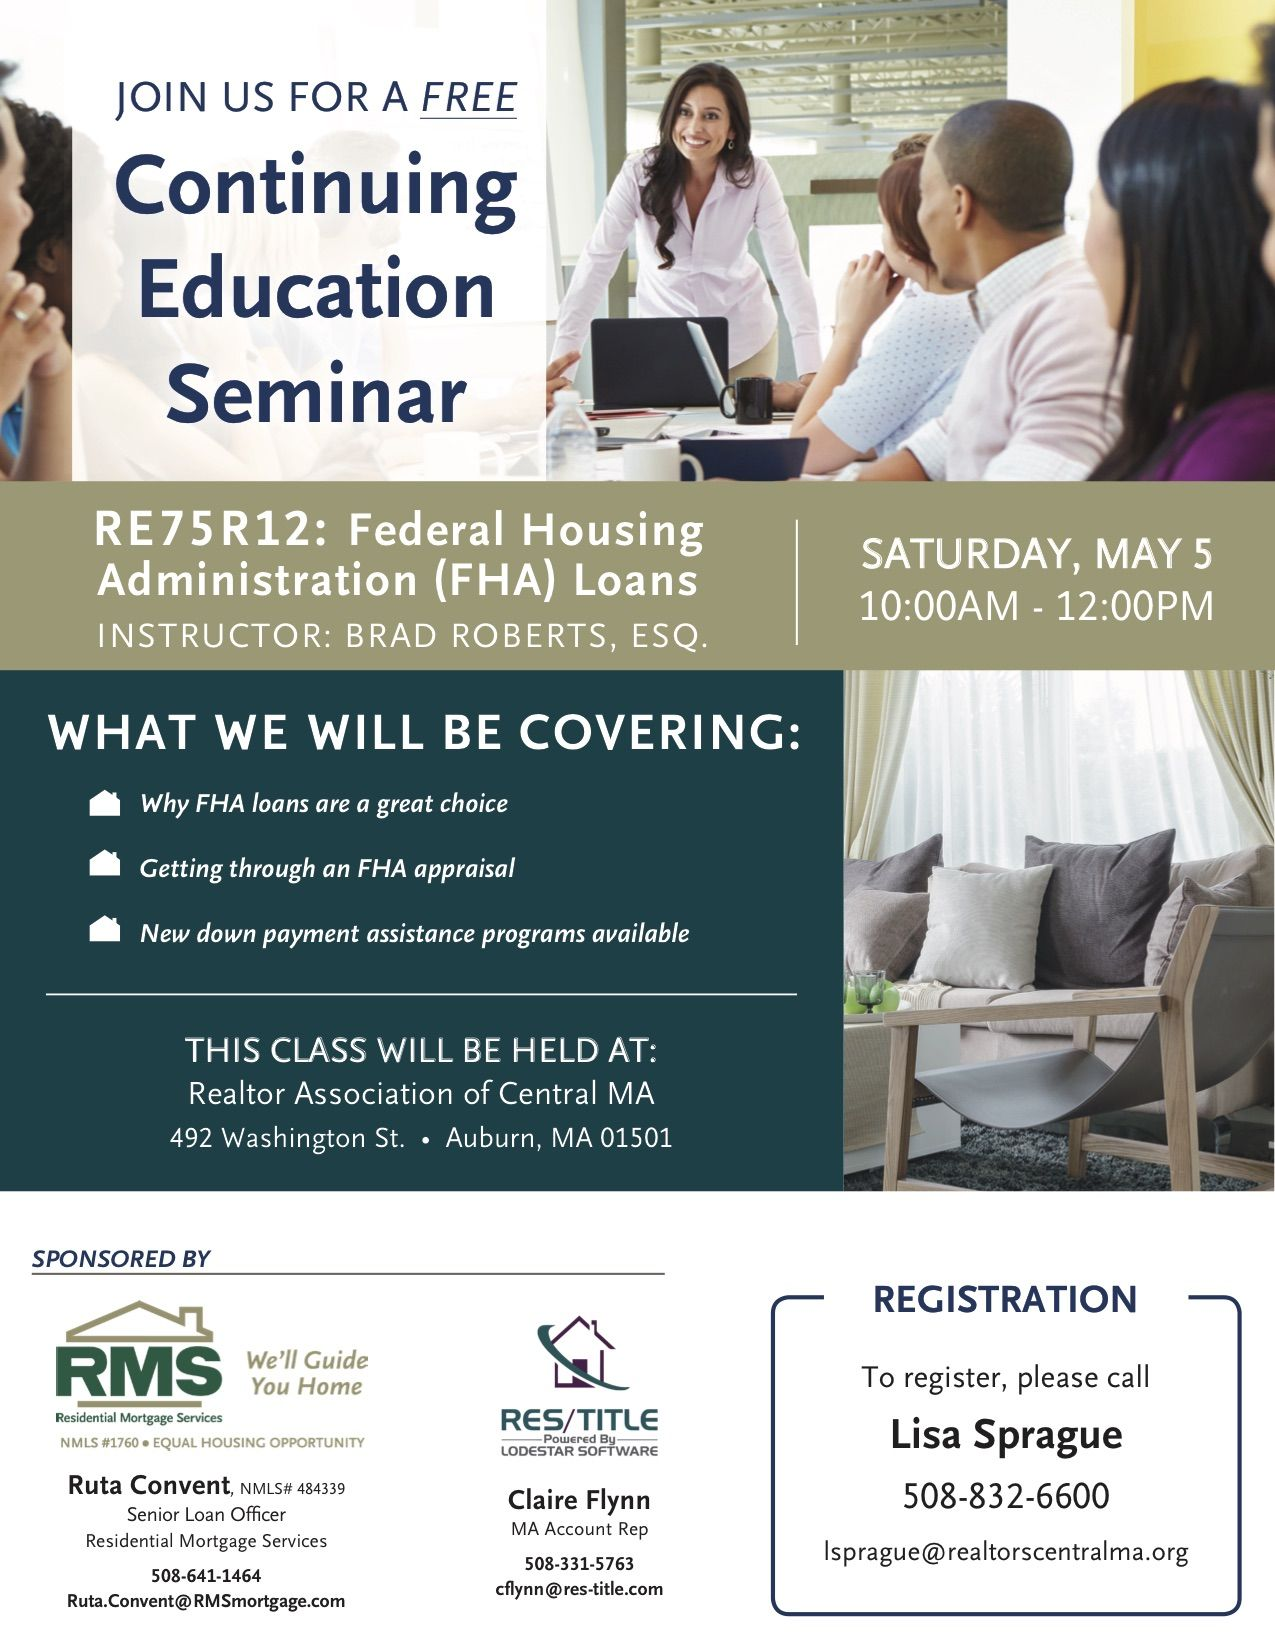 Join Us For This Informative Ceu Course On Fha Loans On May 5th